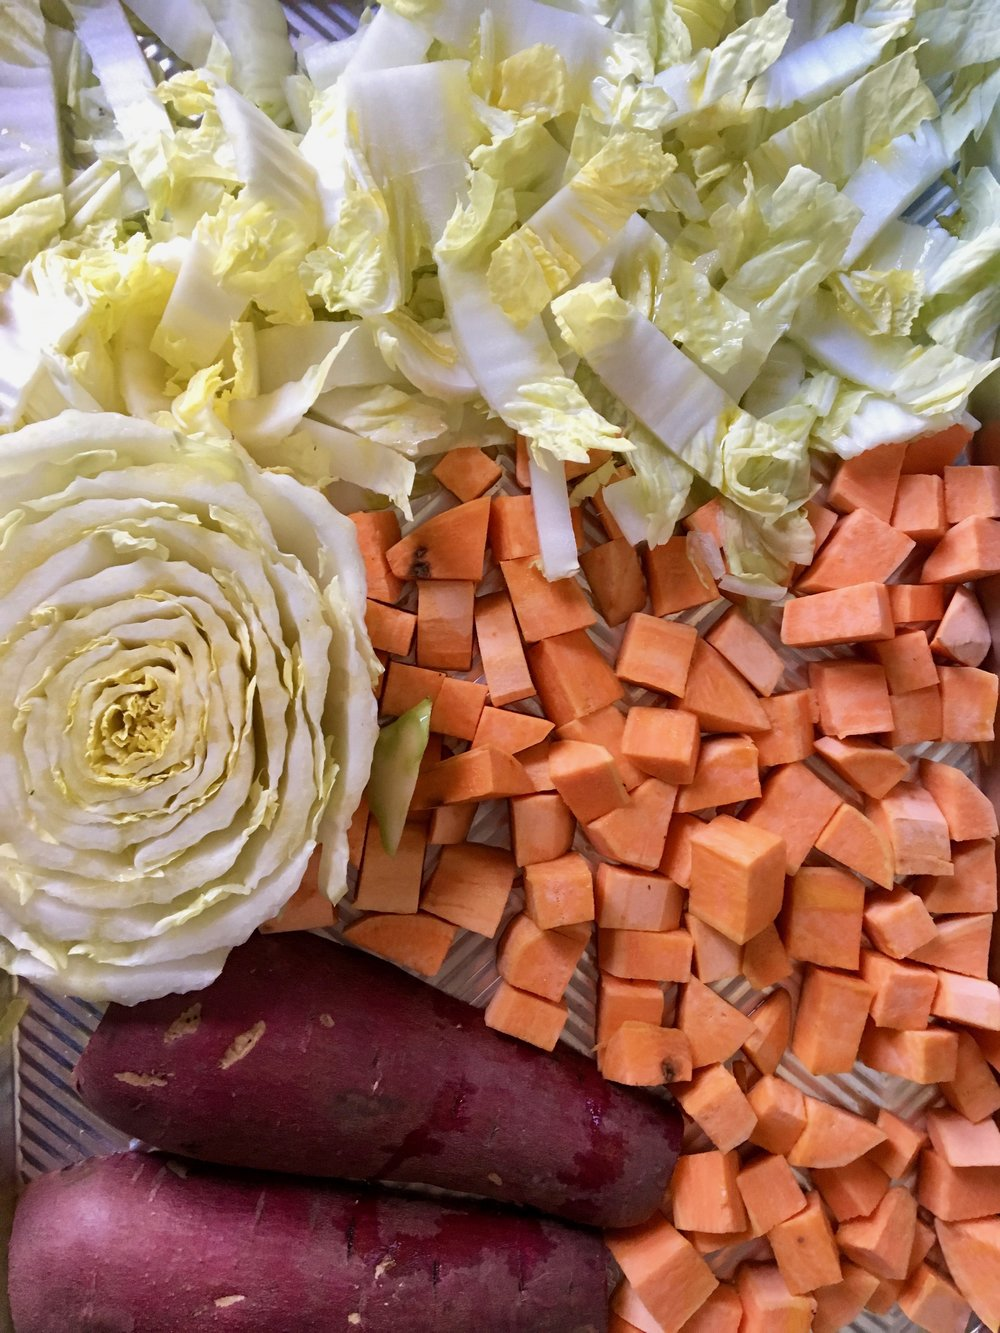 cabbage and sweets.jpg